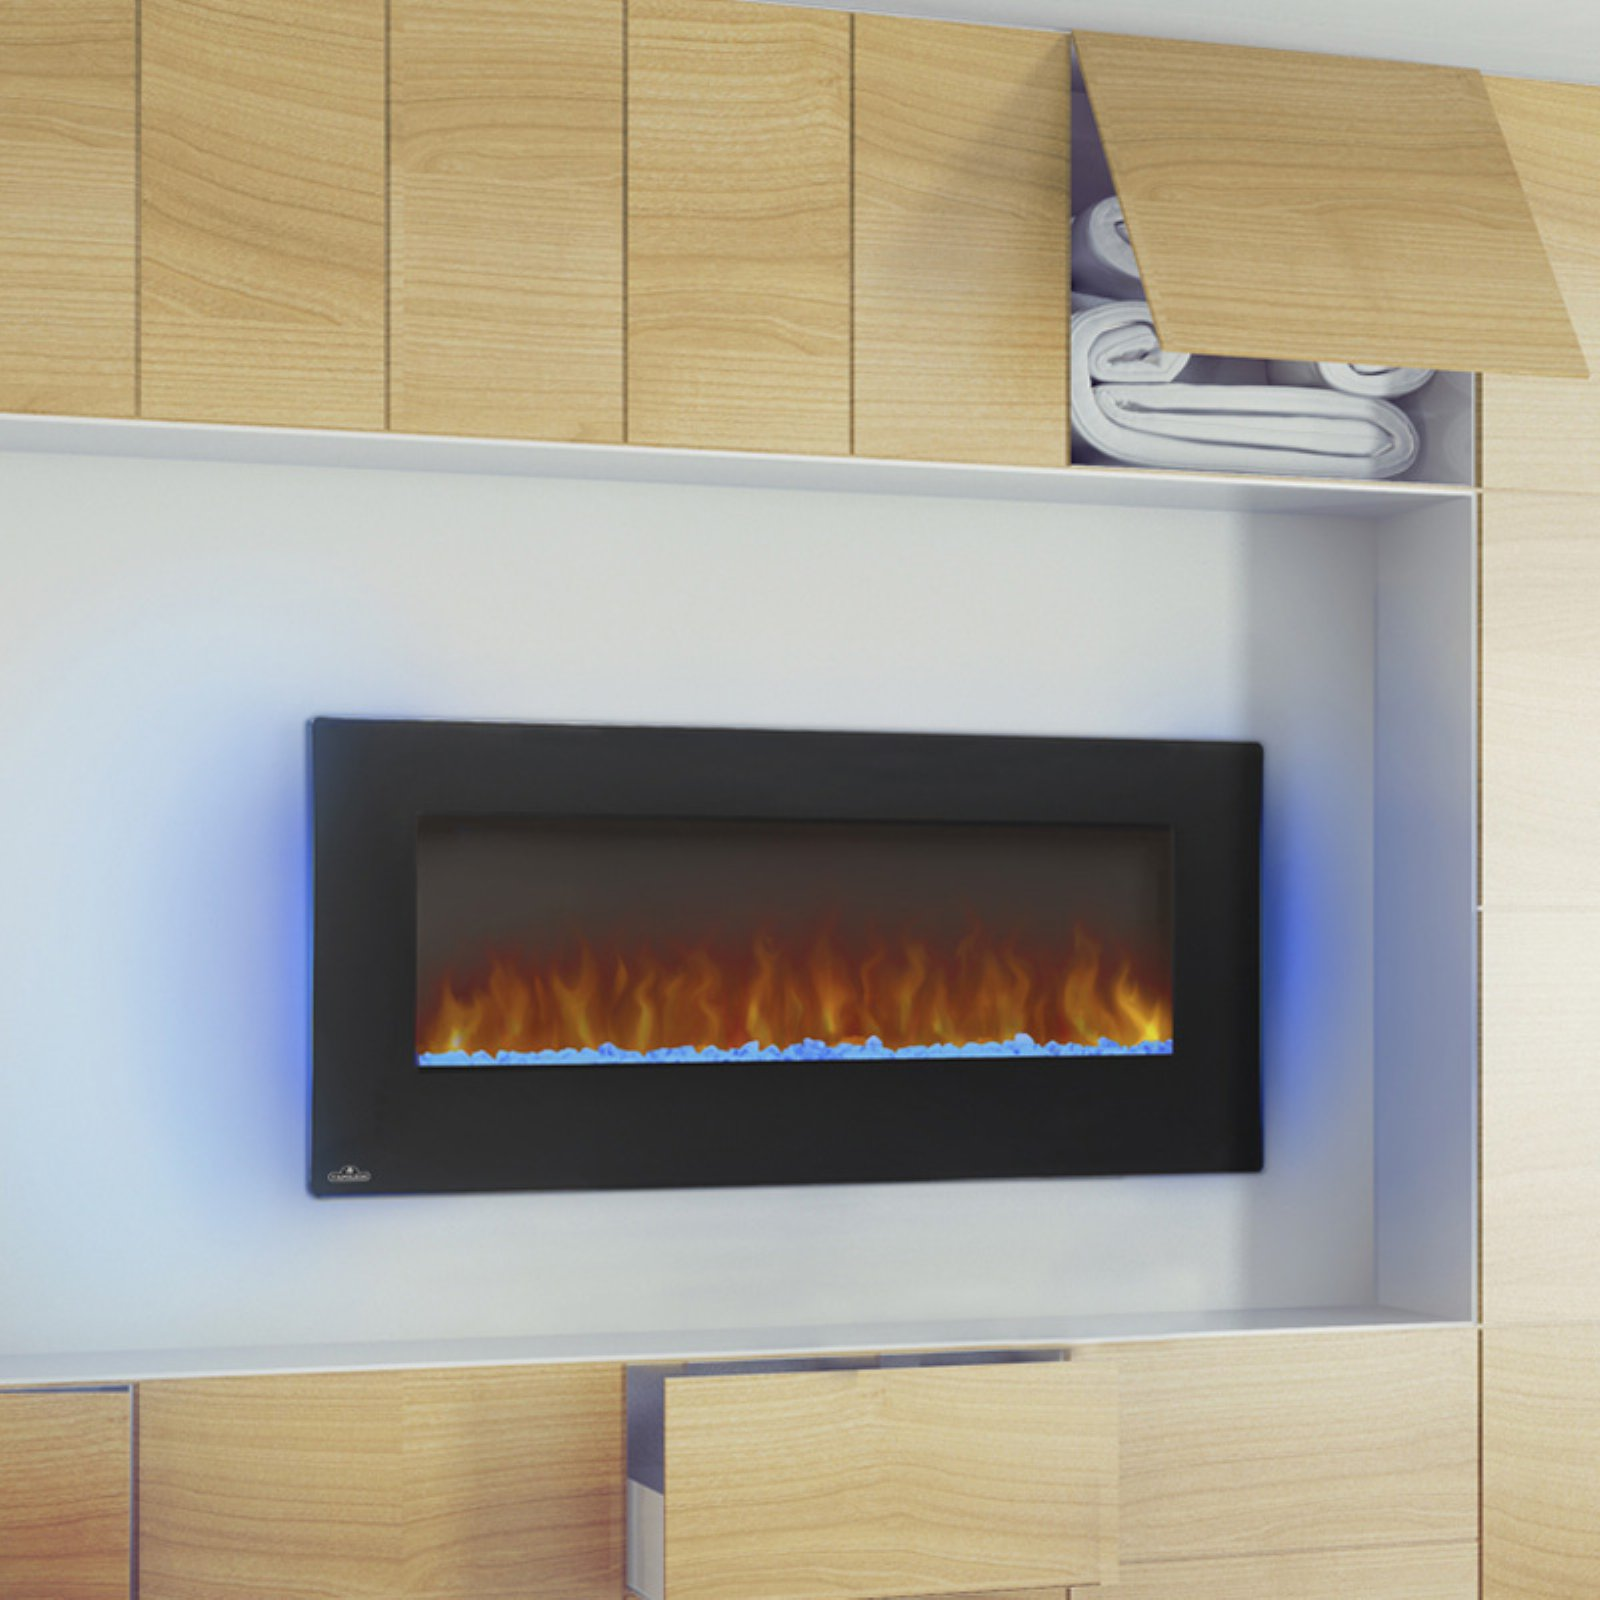 Belham Living 42 in. Electric Wall Mount Fireplace